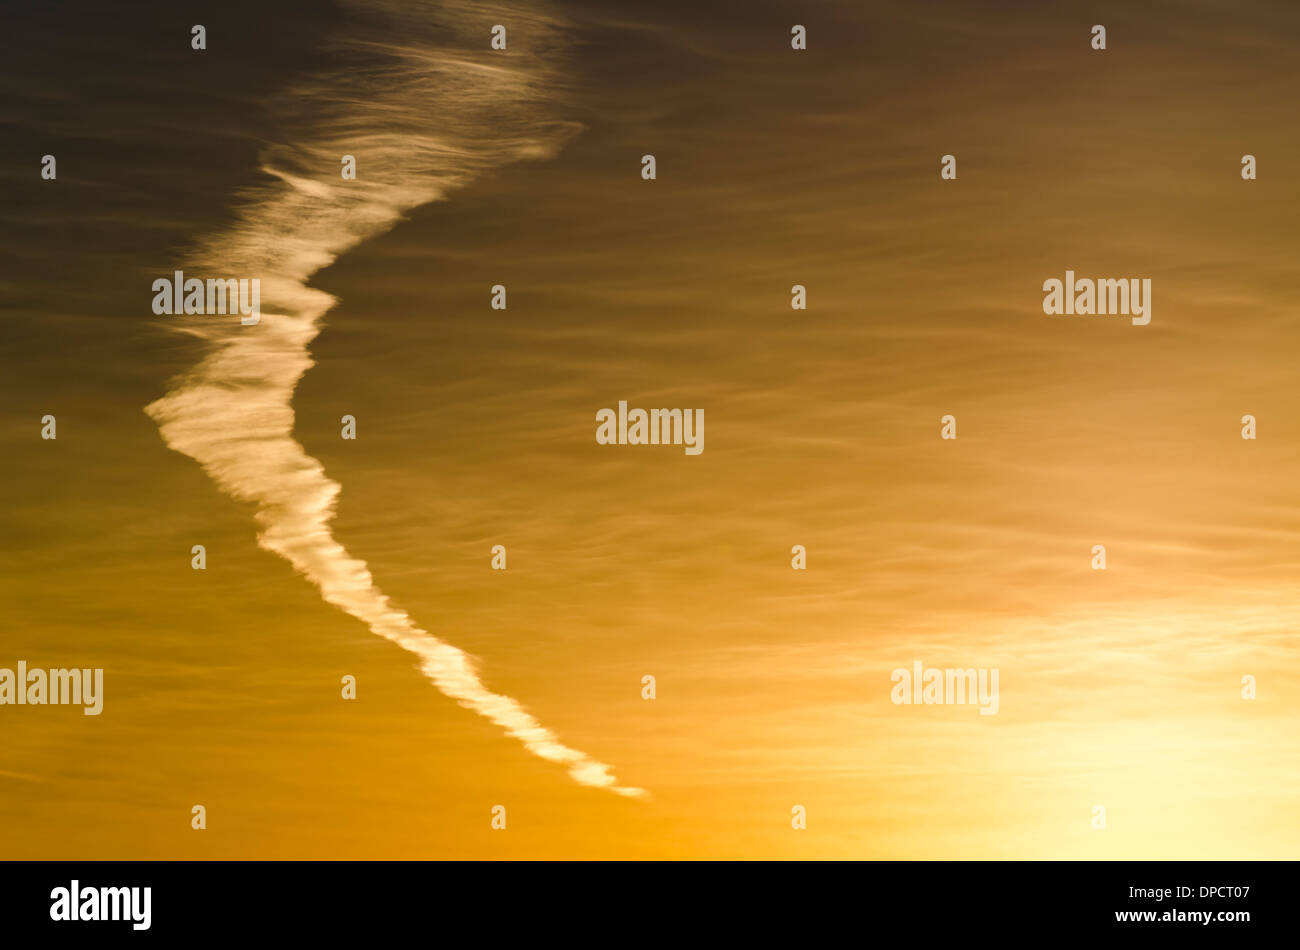 Unique cloud formation in the sky at sunset. - Stock Image